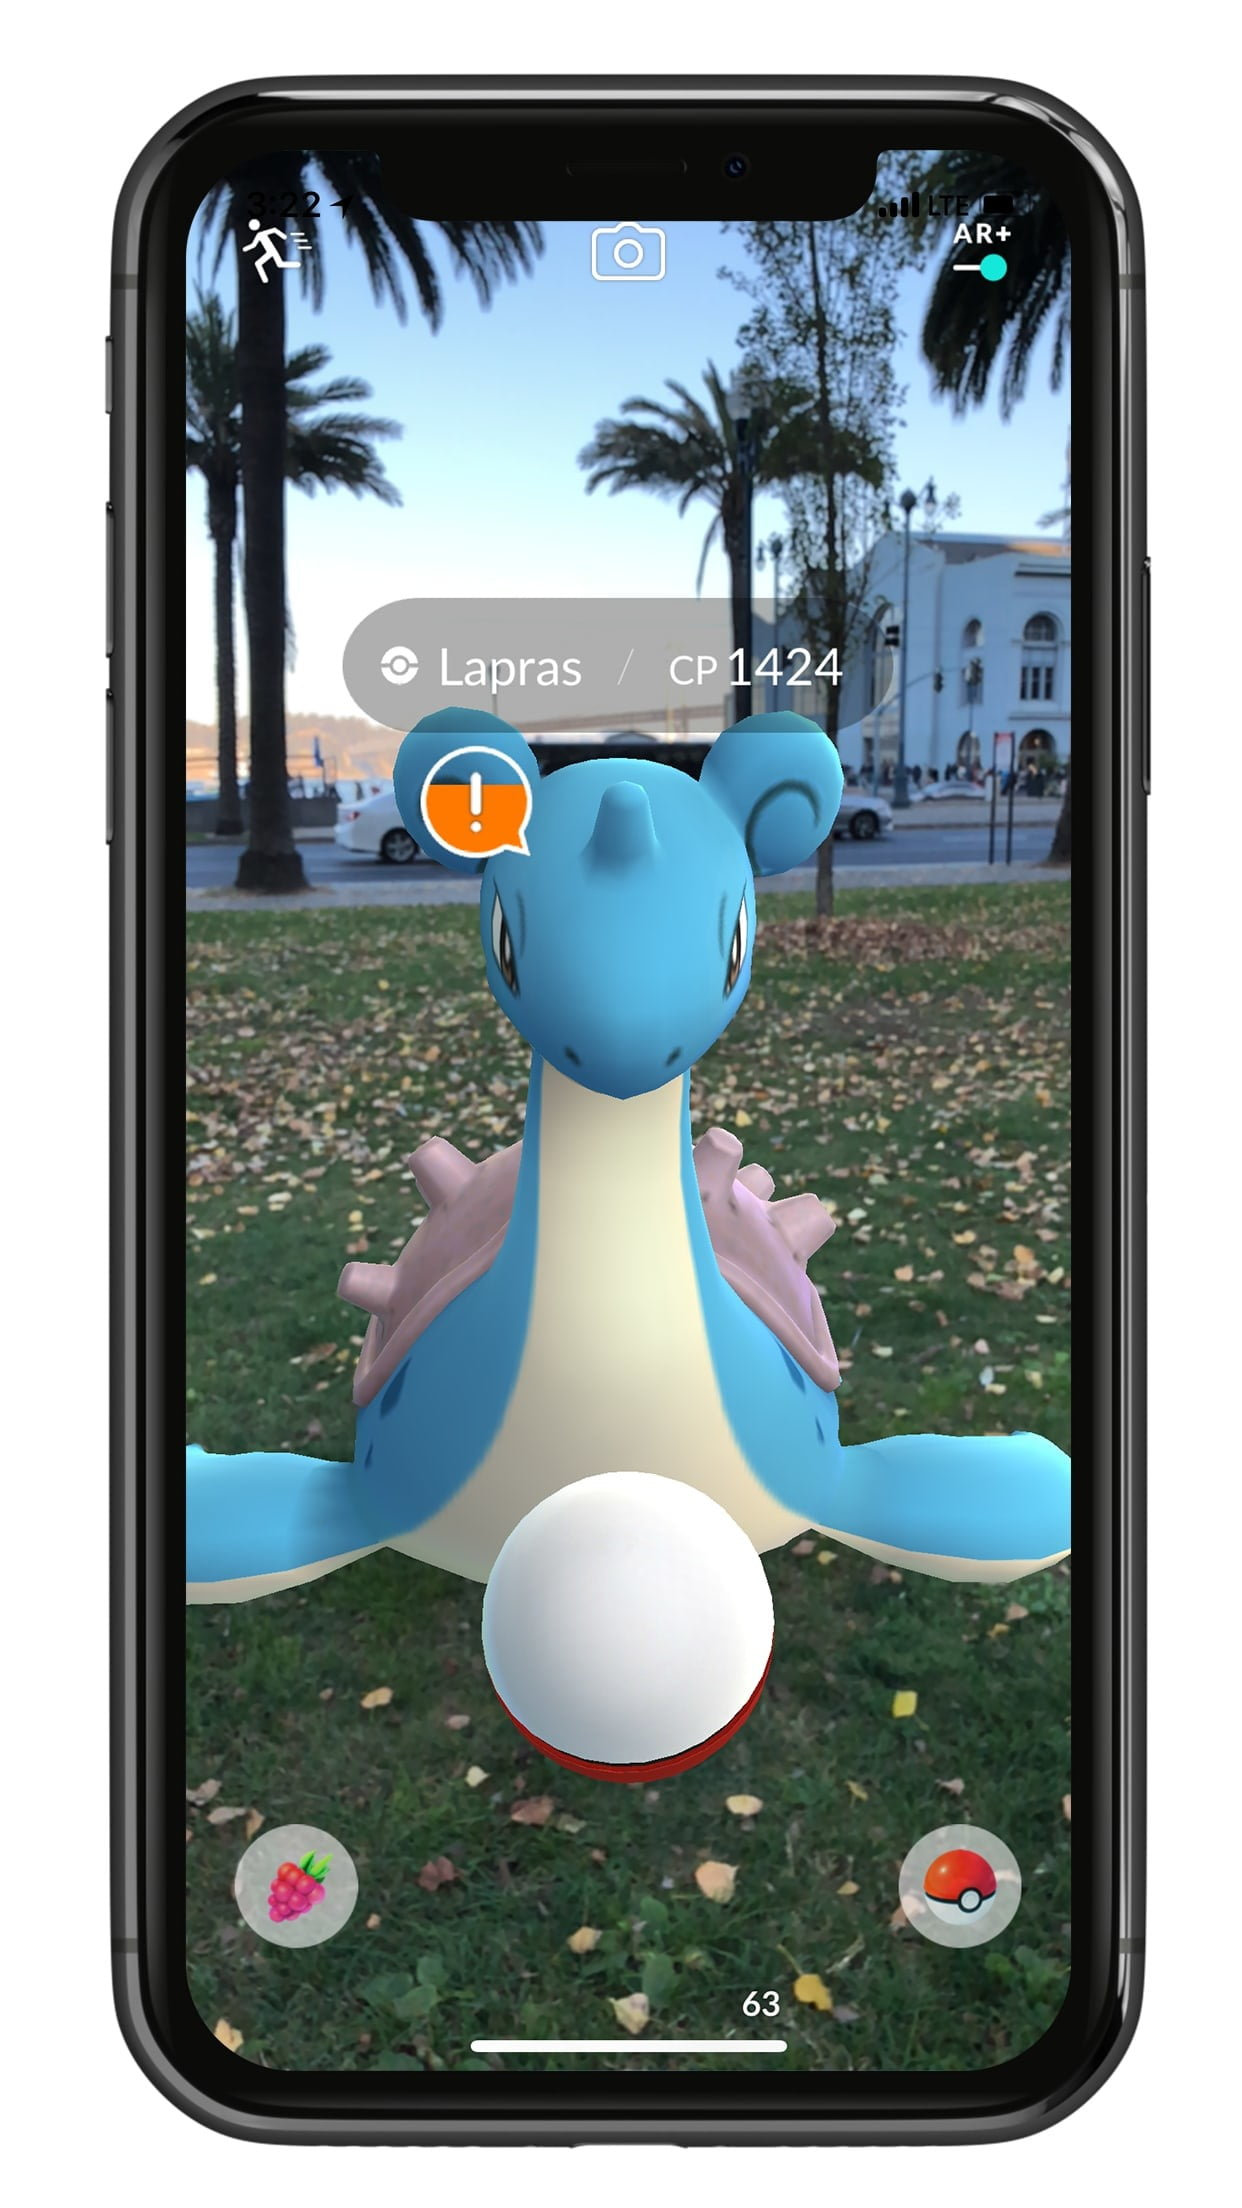 Pokémon Go' Levels Up its Augmented Reality Game With